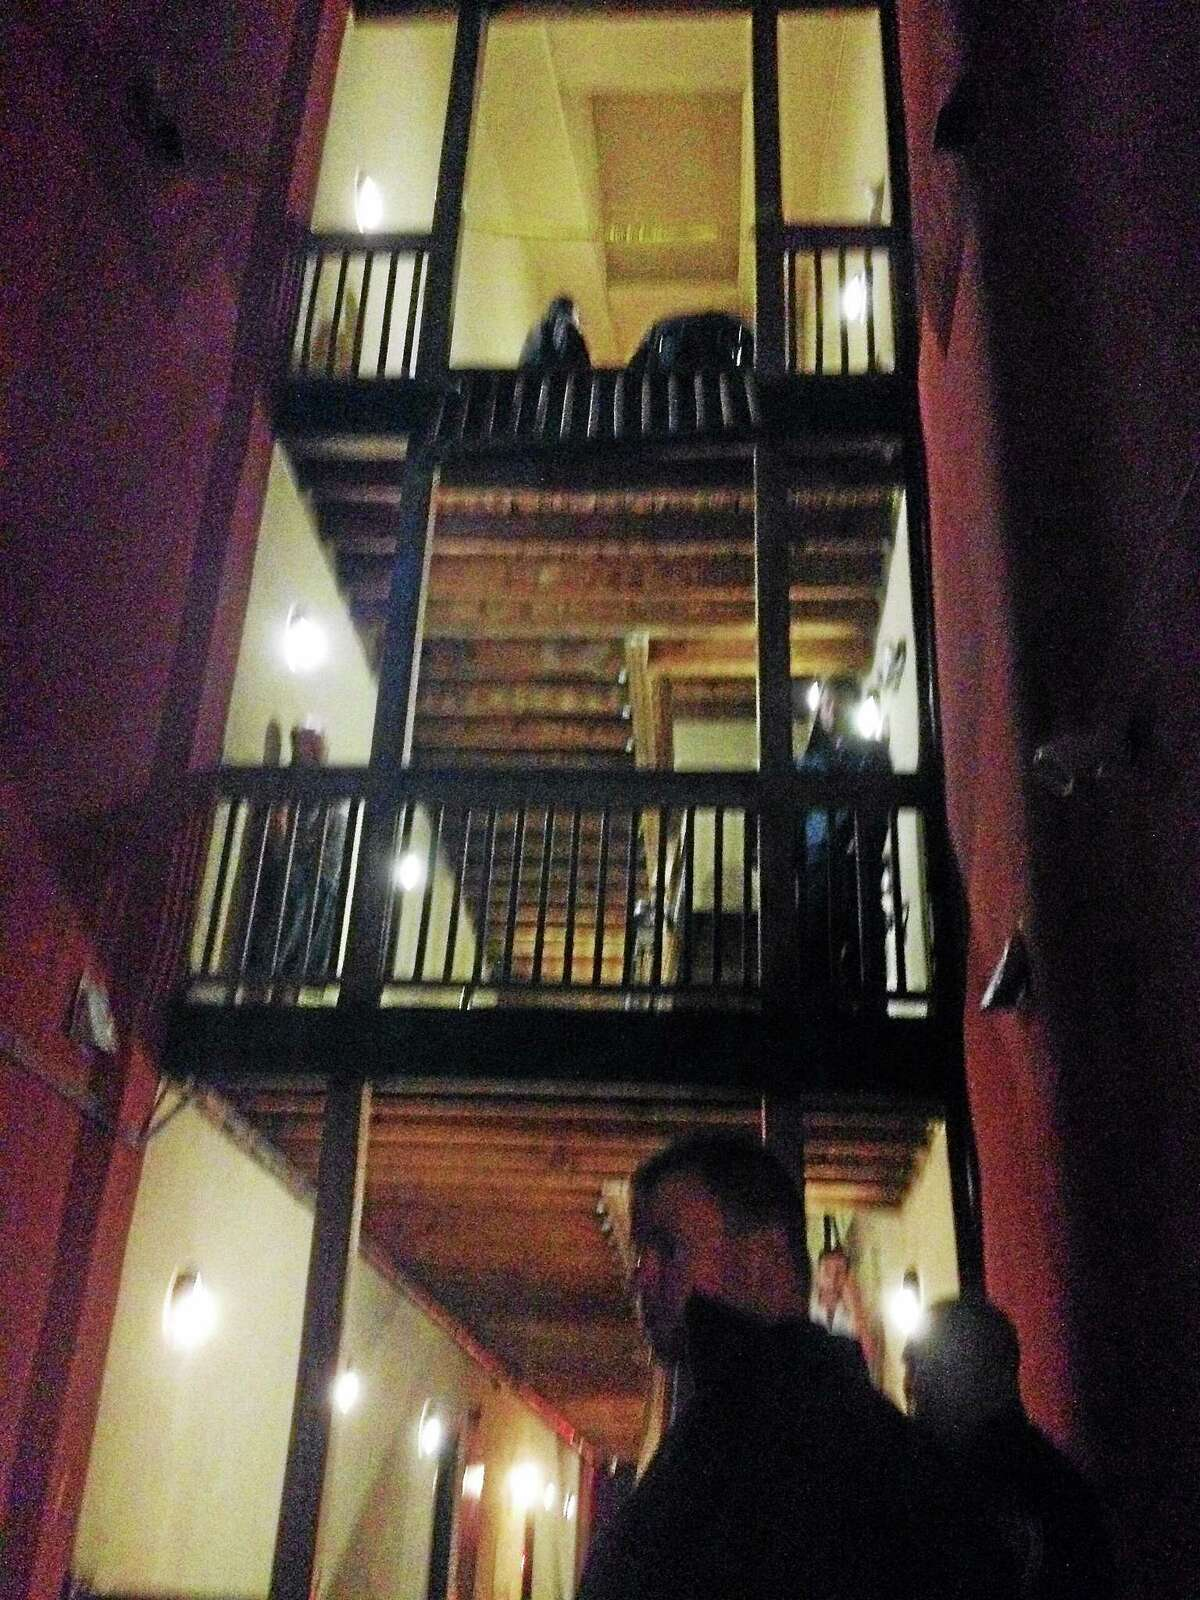 A witness took this photo following an incident in which police say a teen fell from a third-story window at the Wharfside Commons. apartment building in Middletown. Police arrested 21-year-old man shortly afterward on risk of injury, assault and other charges.